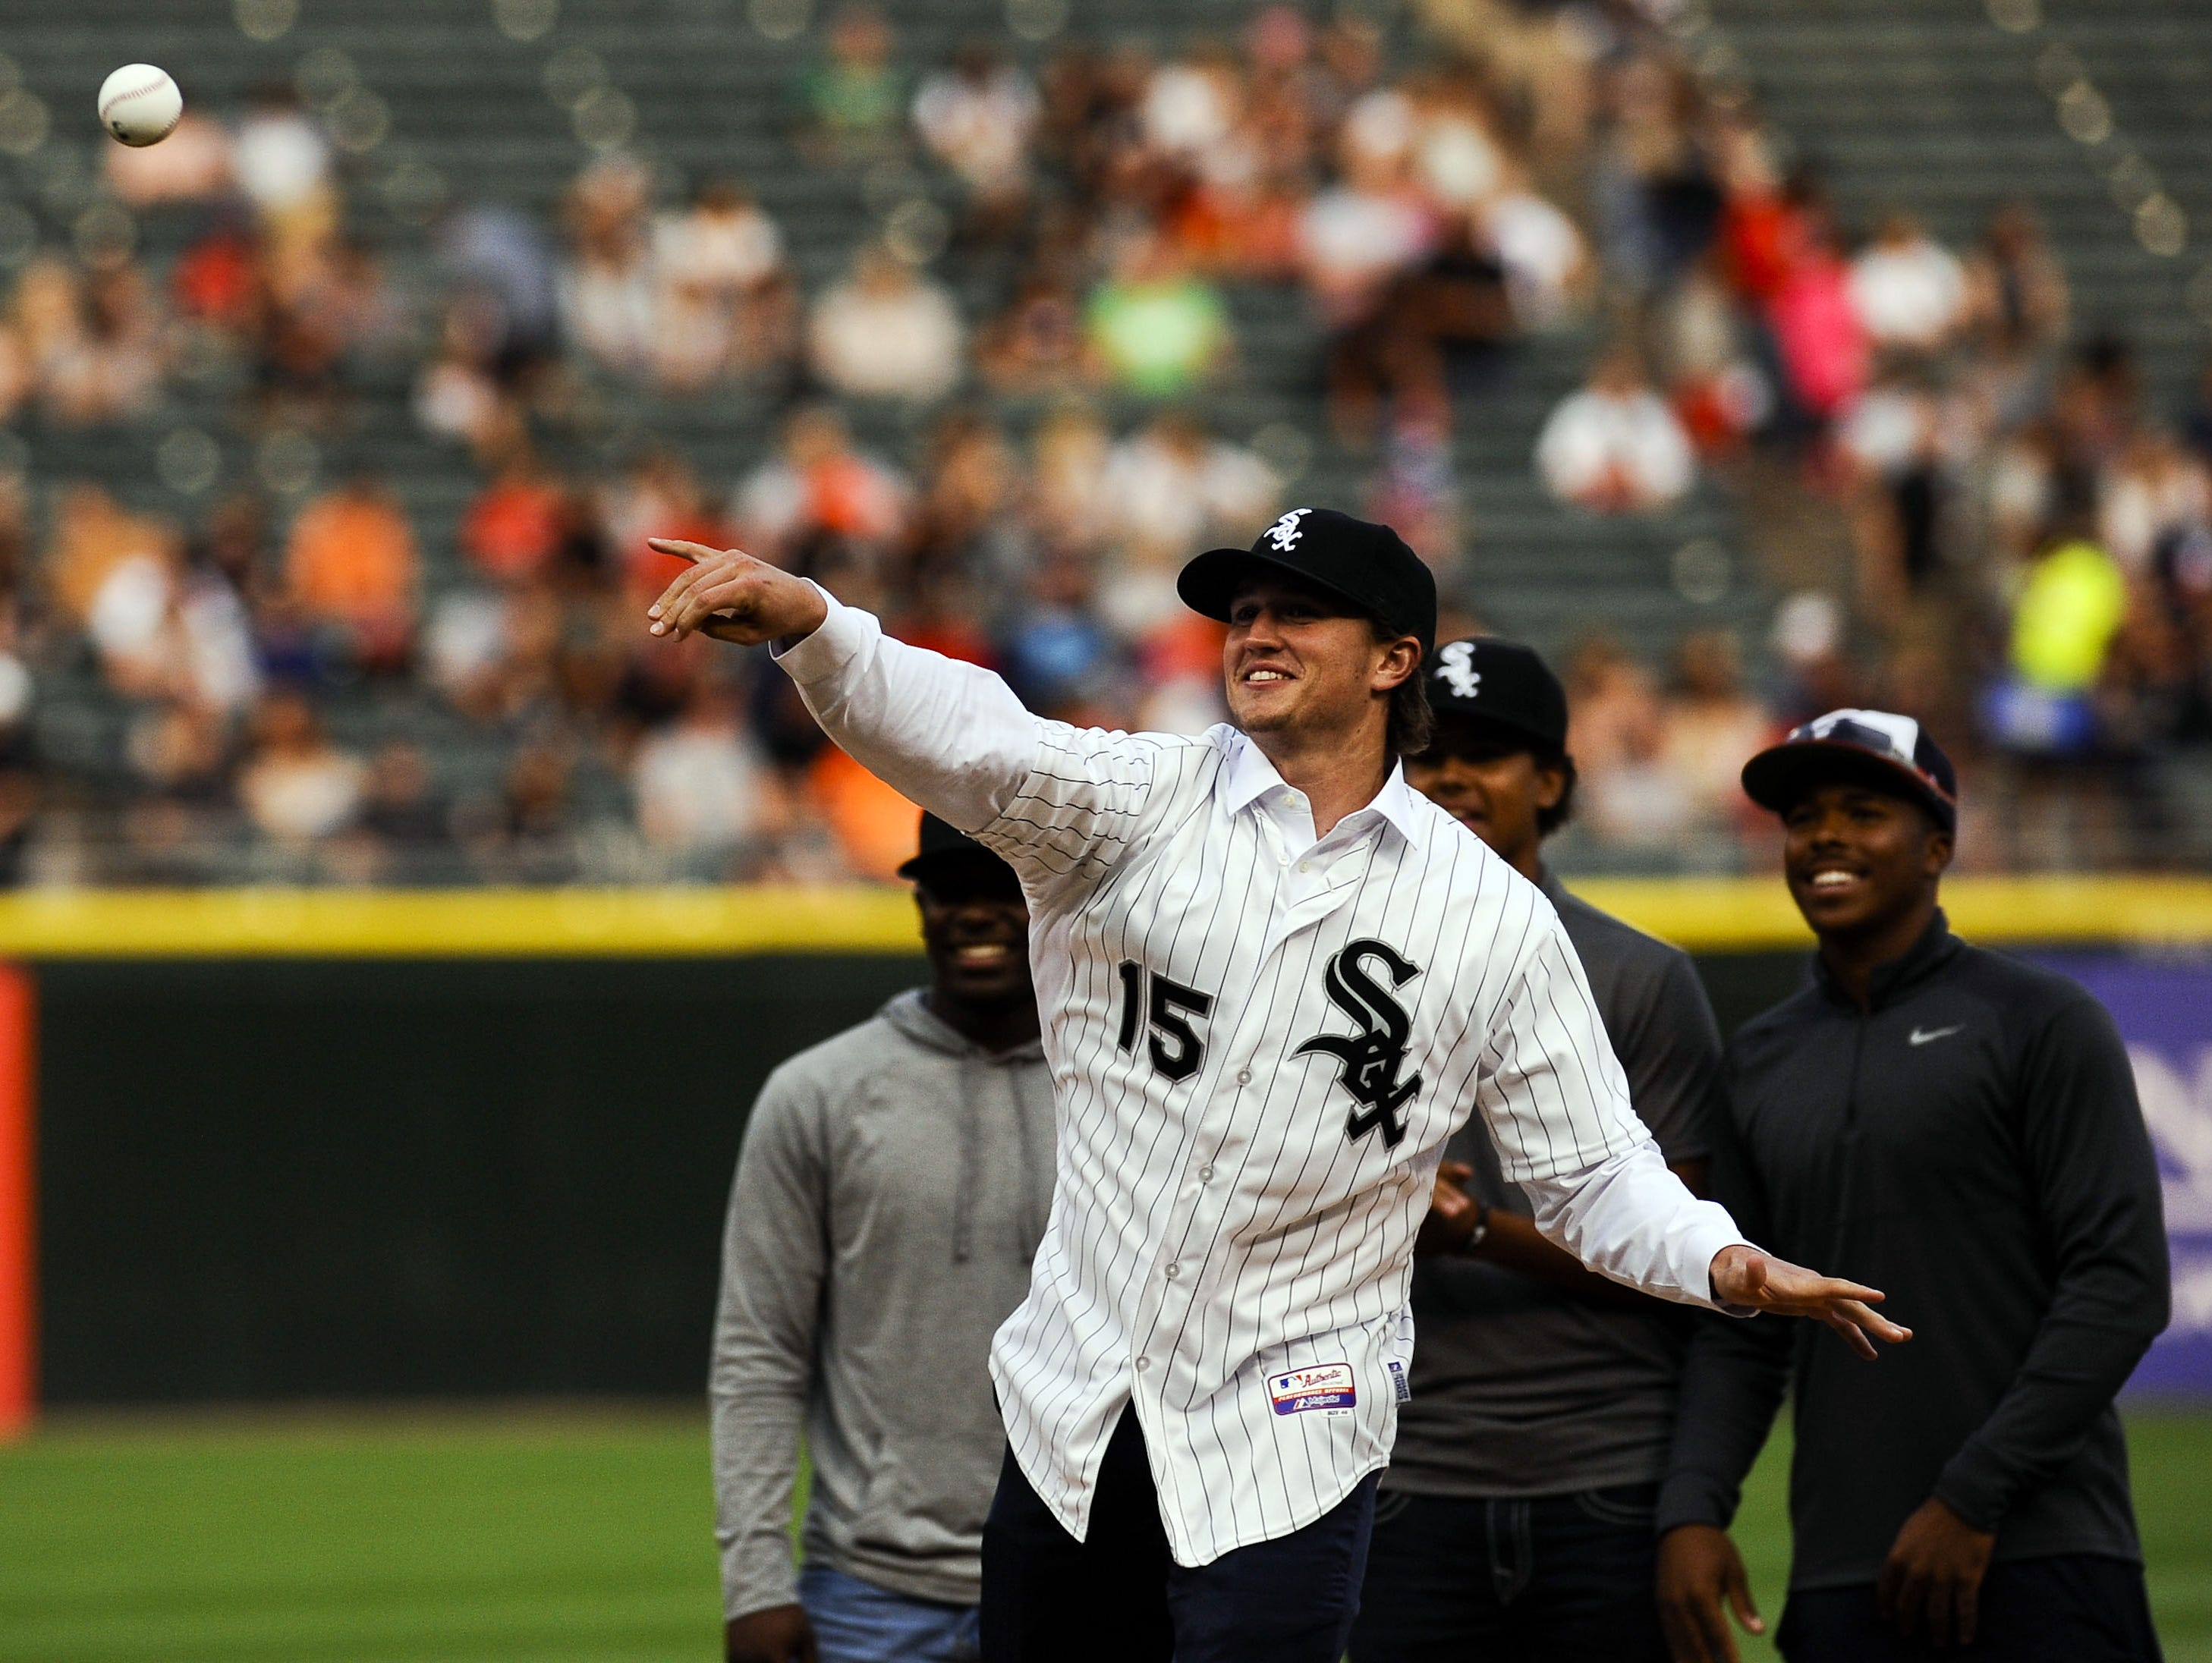 Former Vanderbilt pitcher Carson Fulmer throws out a ceremonial first pitch before the Chicago White Sox's game against the Baltimore Orioles on Friday.